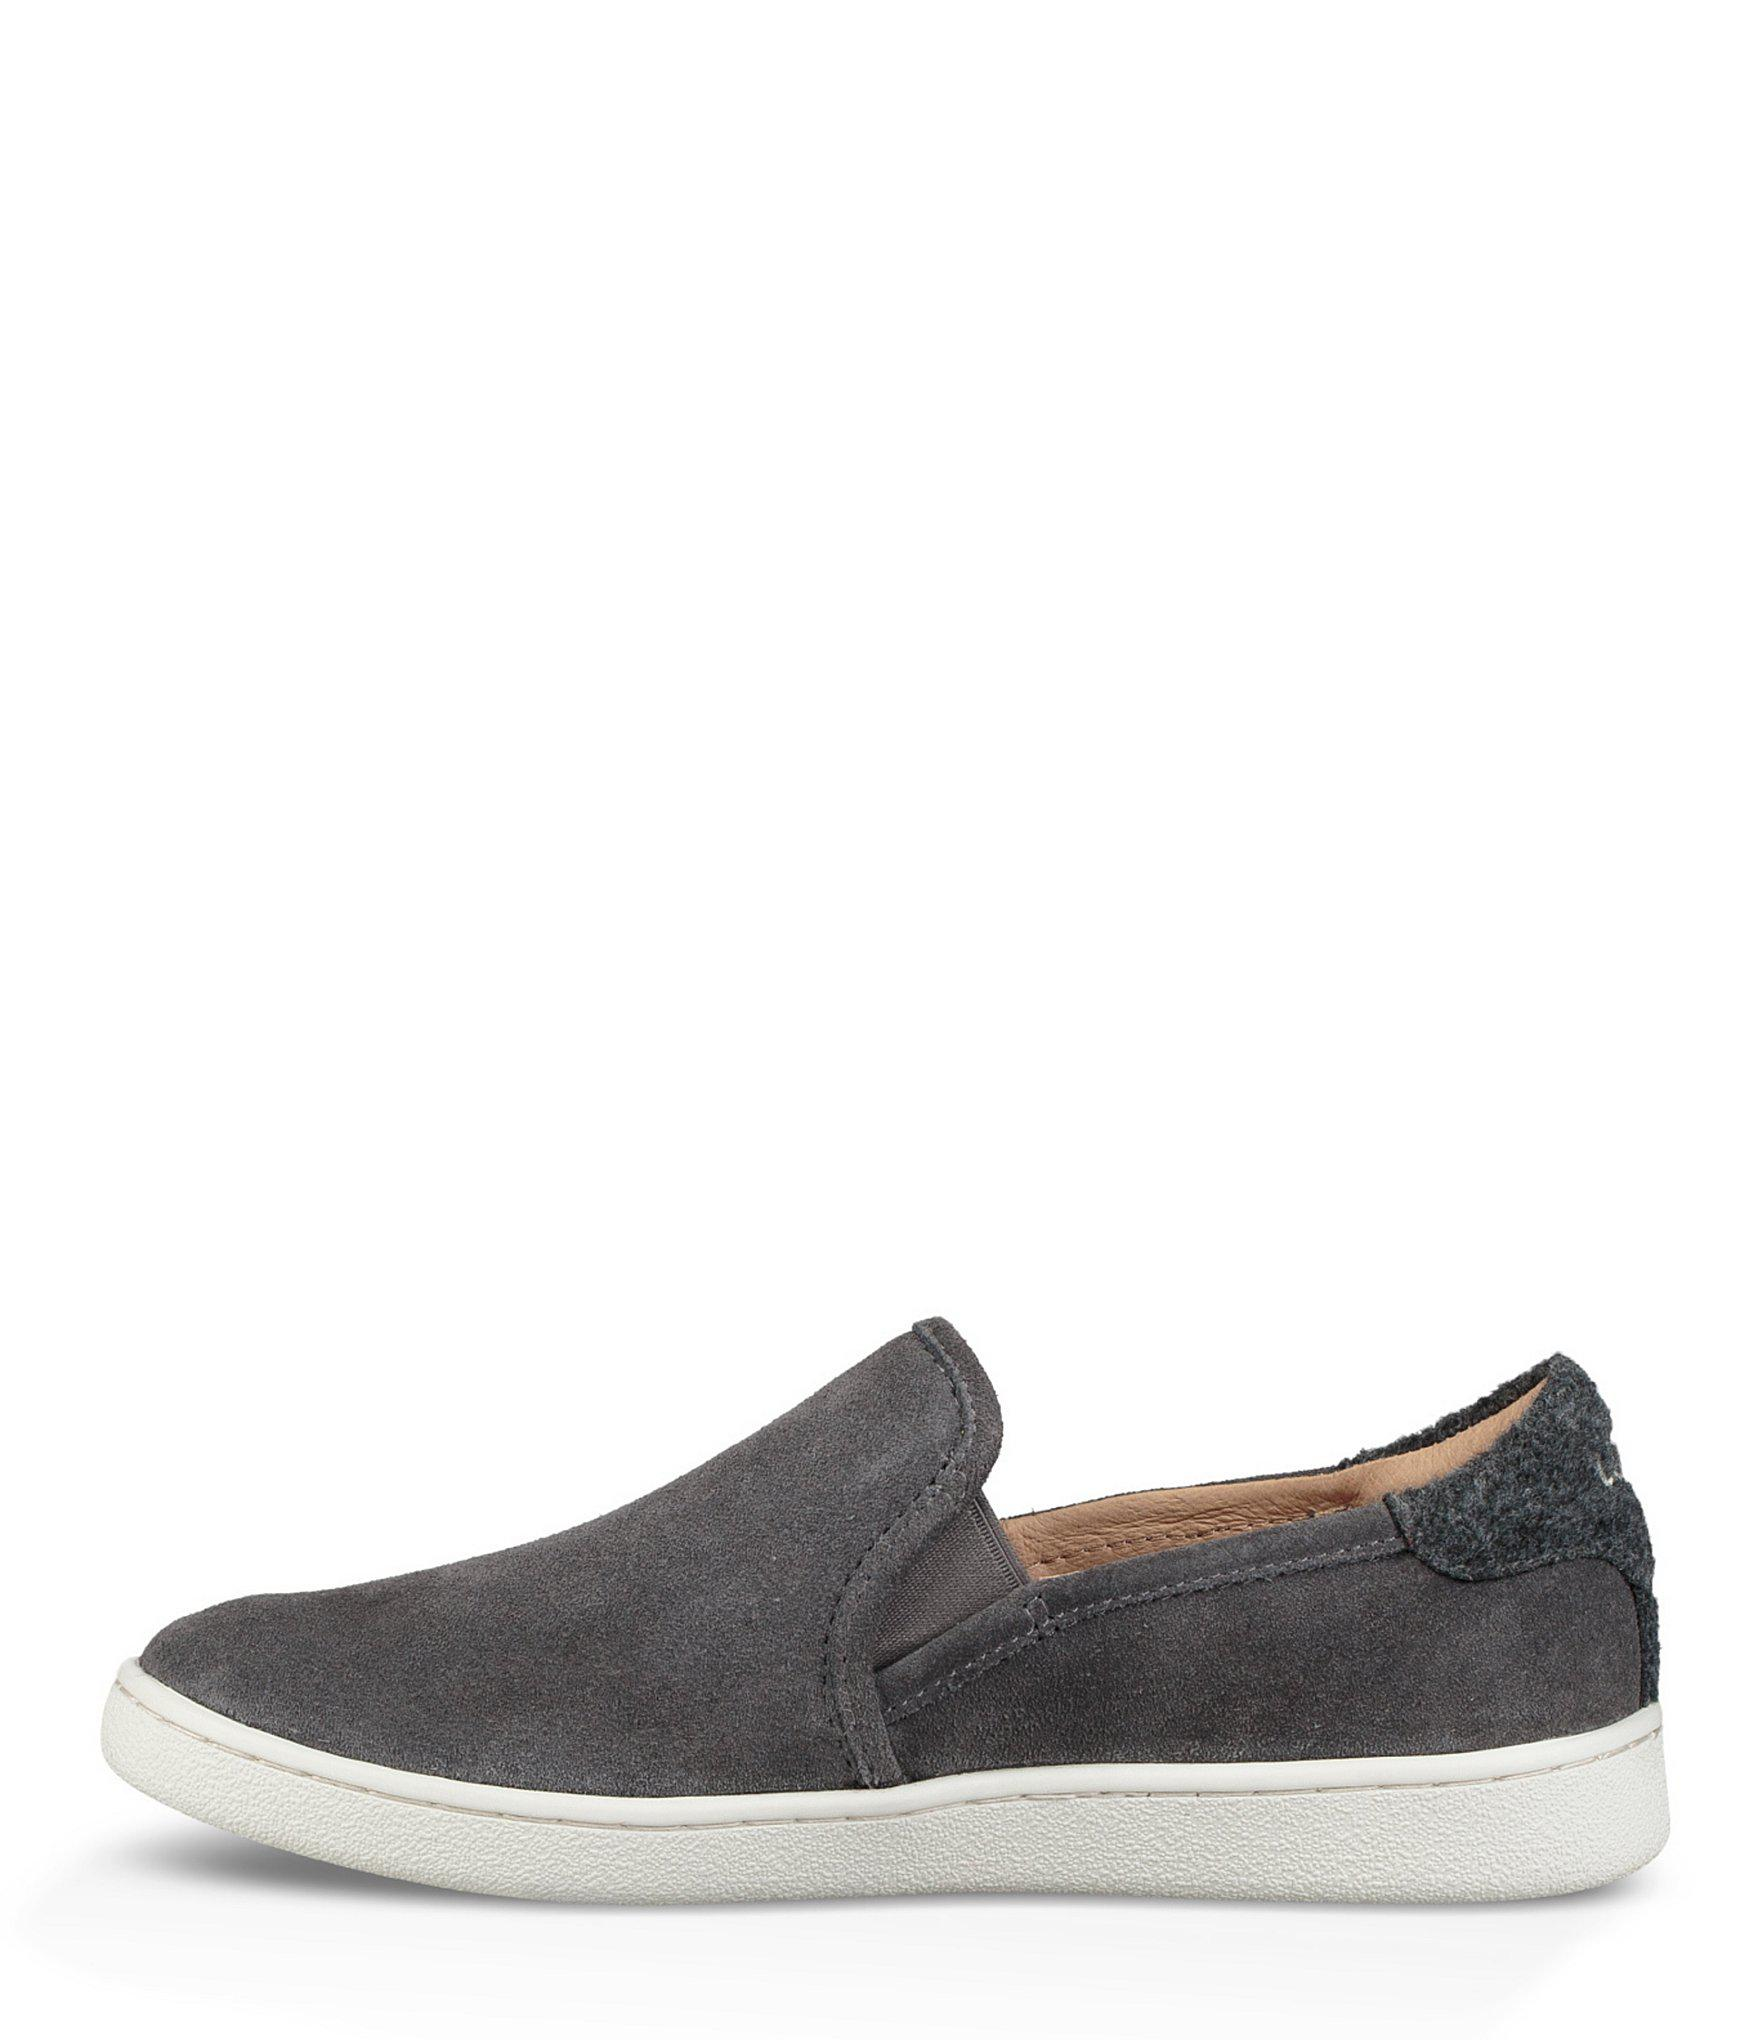 ae723305e5f UGG Cas Suede Slip On Sneakers in Gray - Lyst